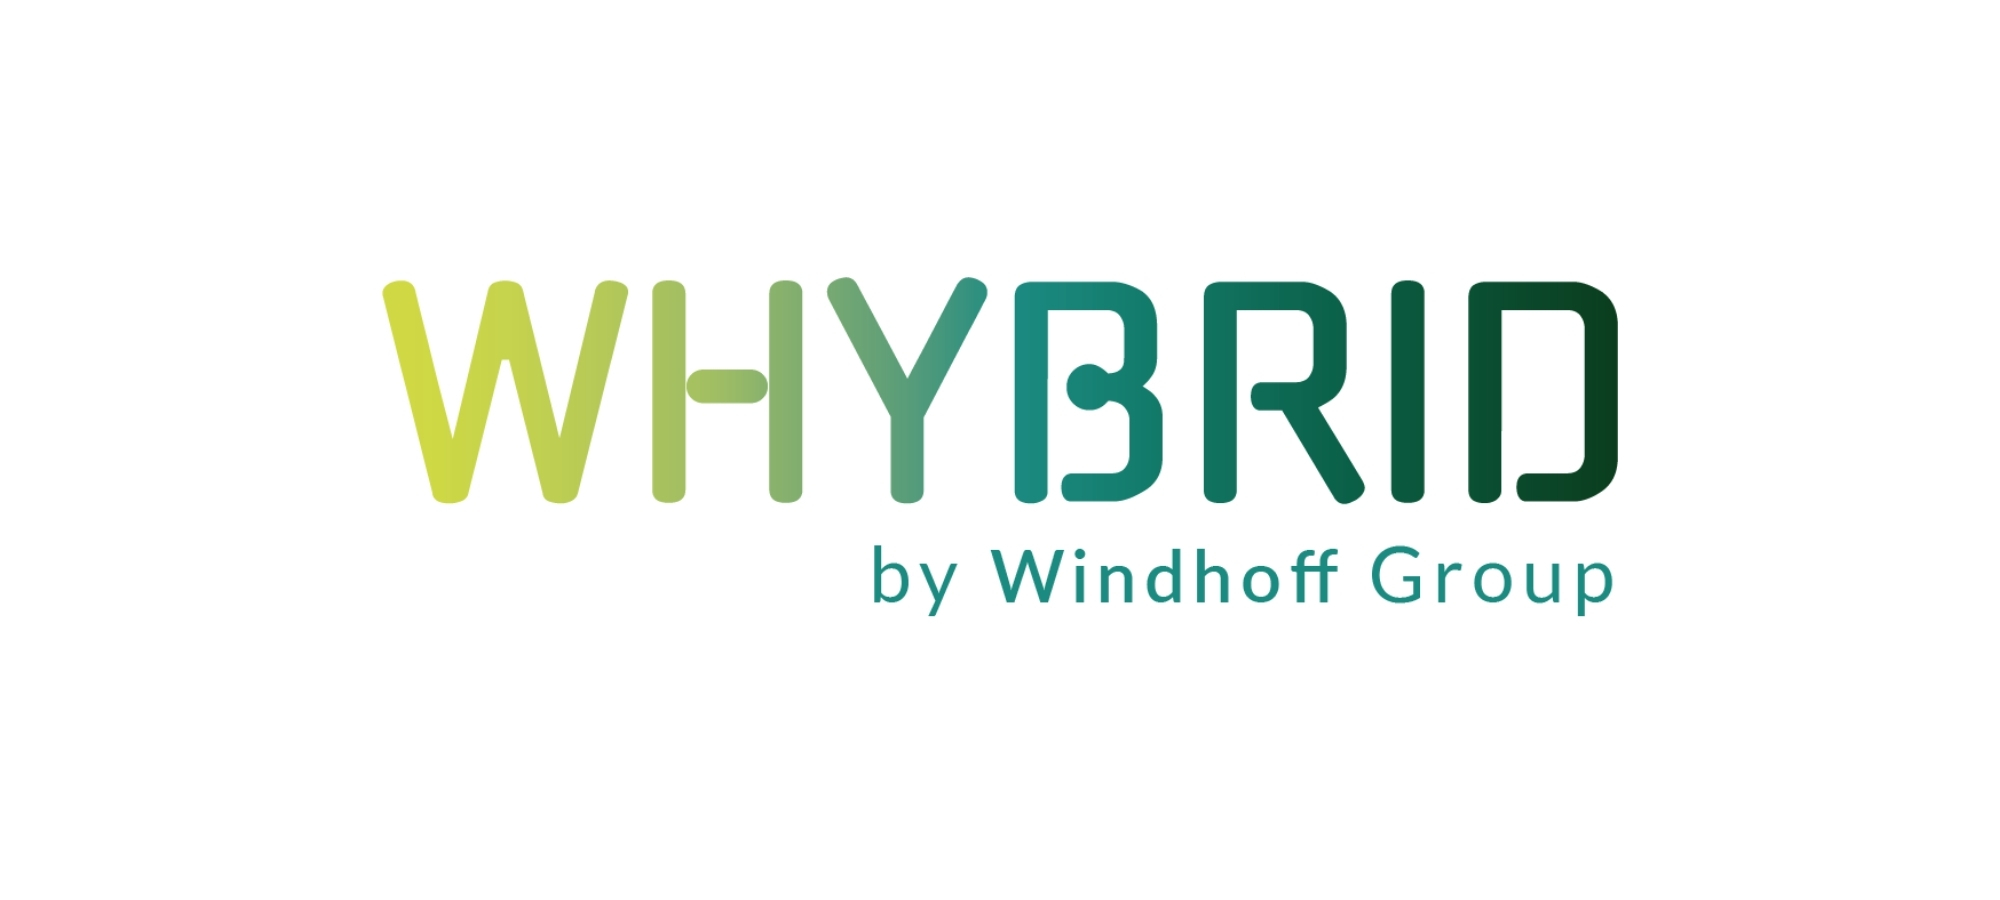 WHYBRID_Windhoff Group